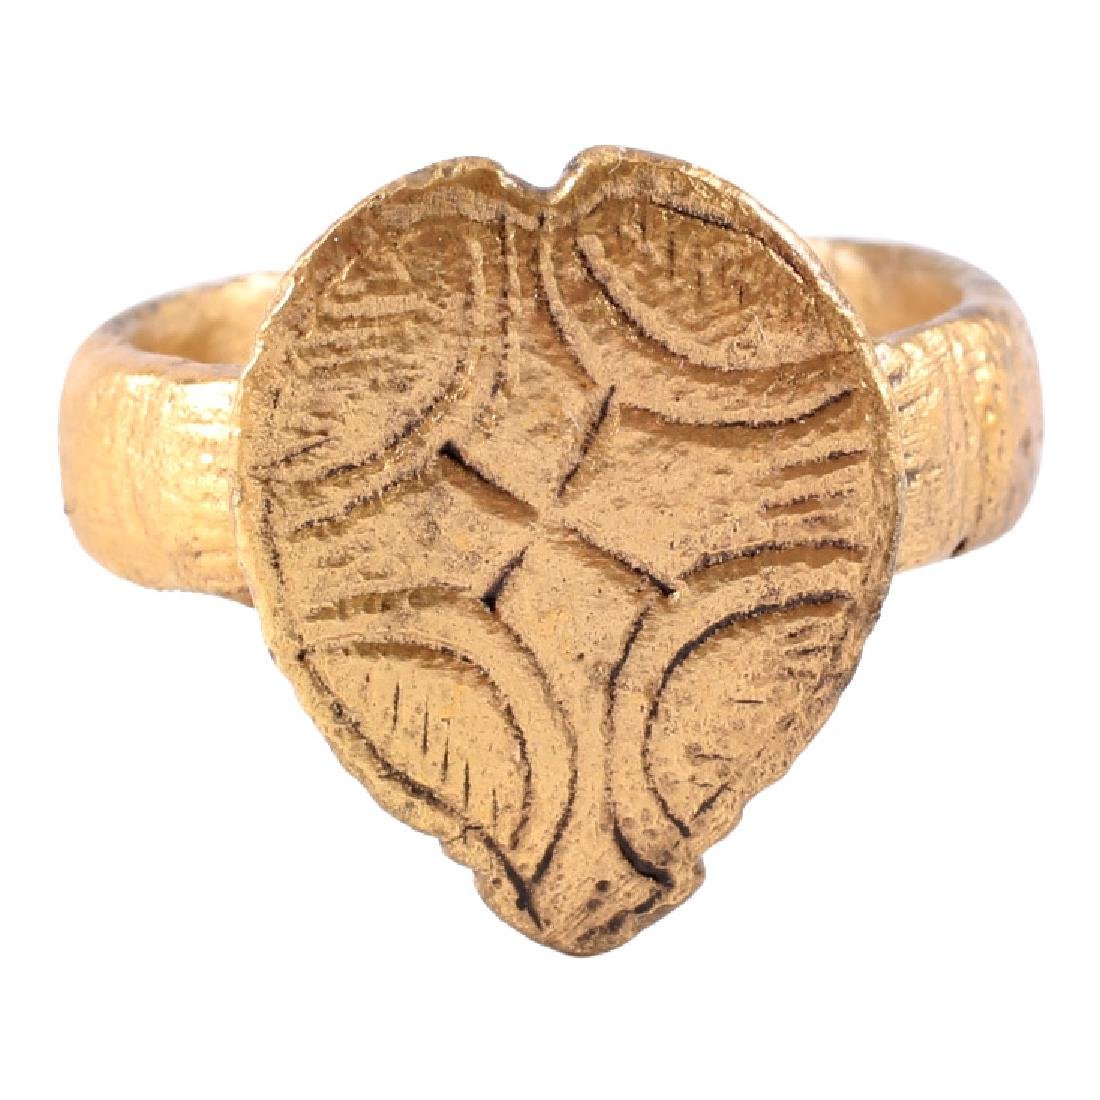 Viking Warrior's Heart Ring, 850-1000